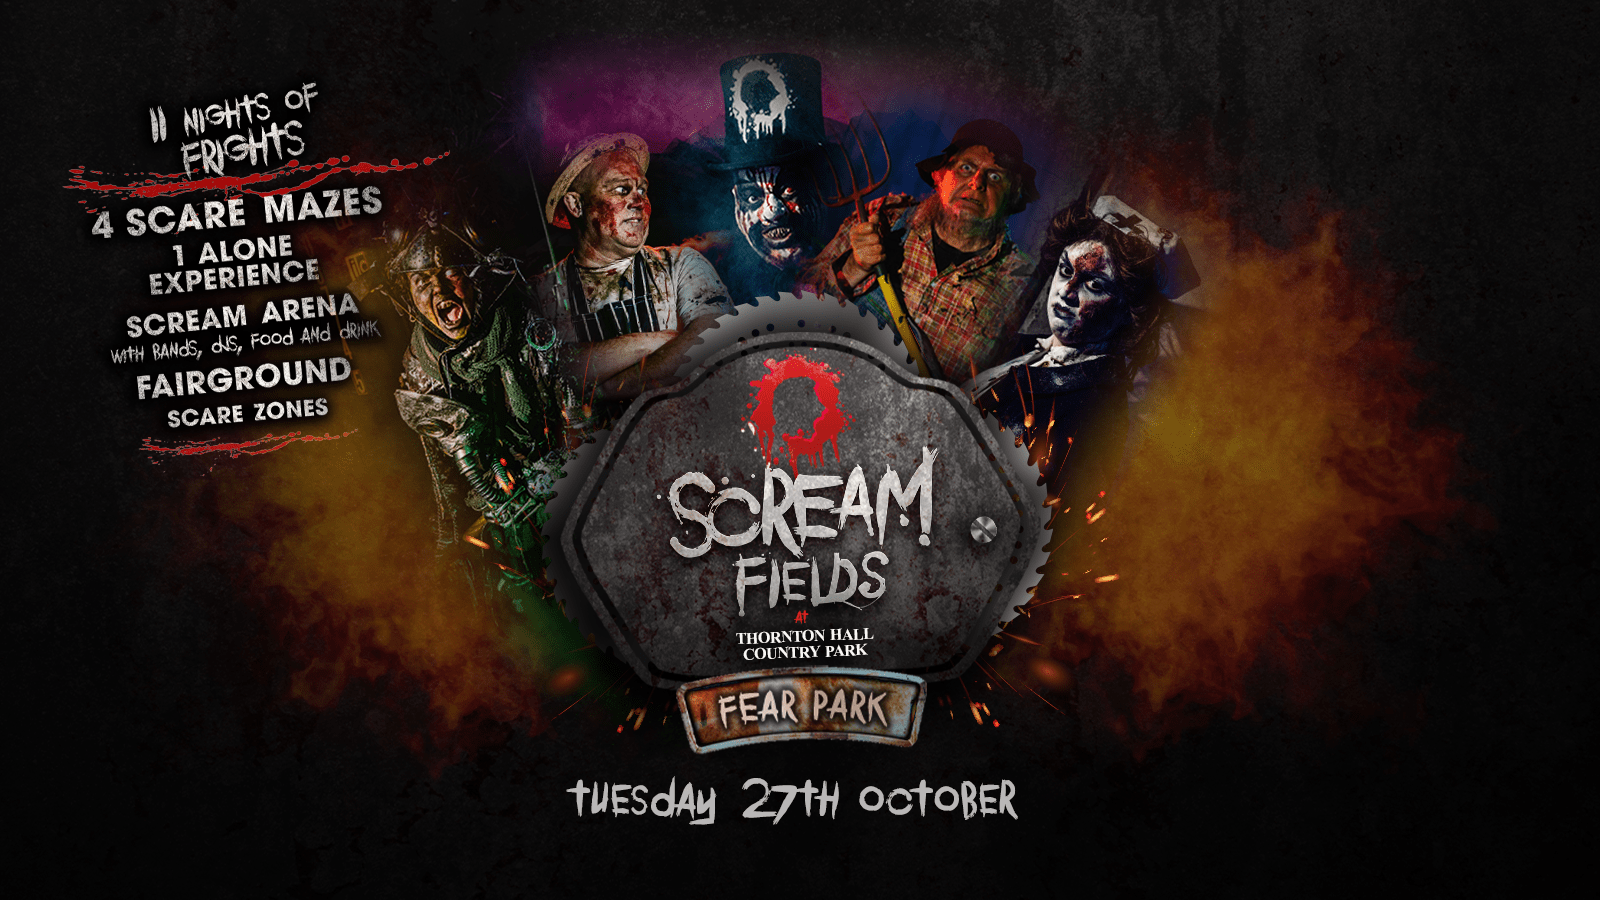 6.45PM – Screamfields: Tuesday 27th October 2020